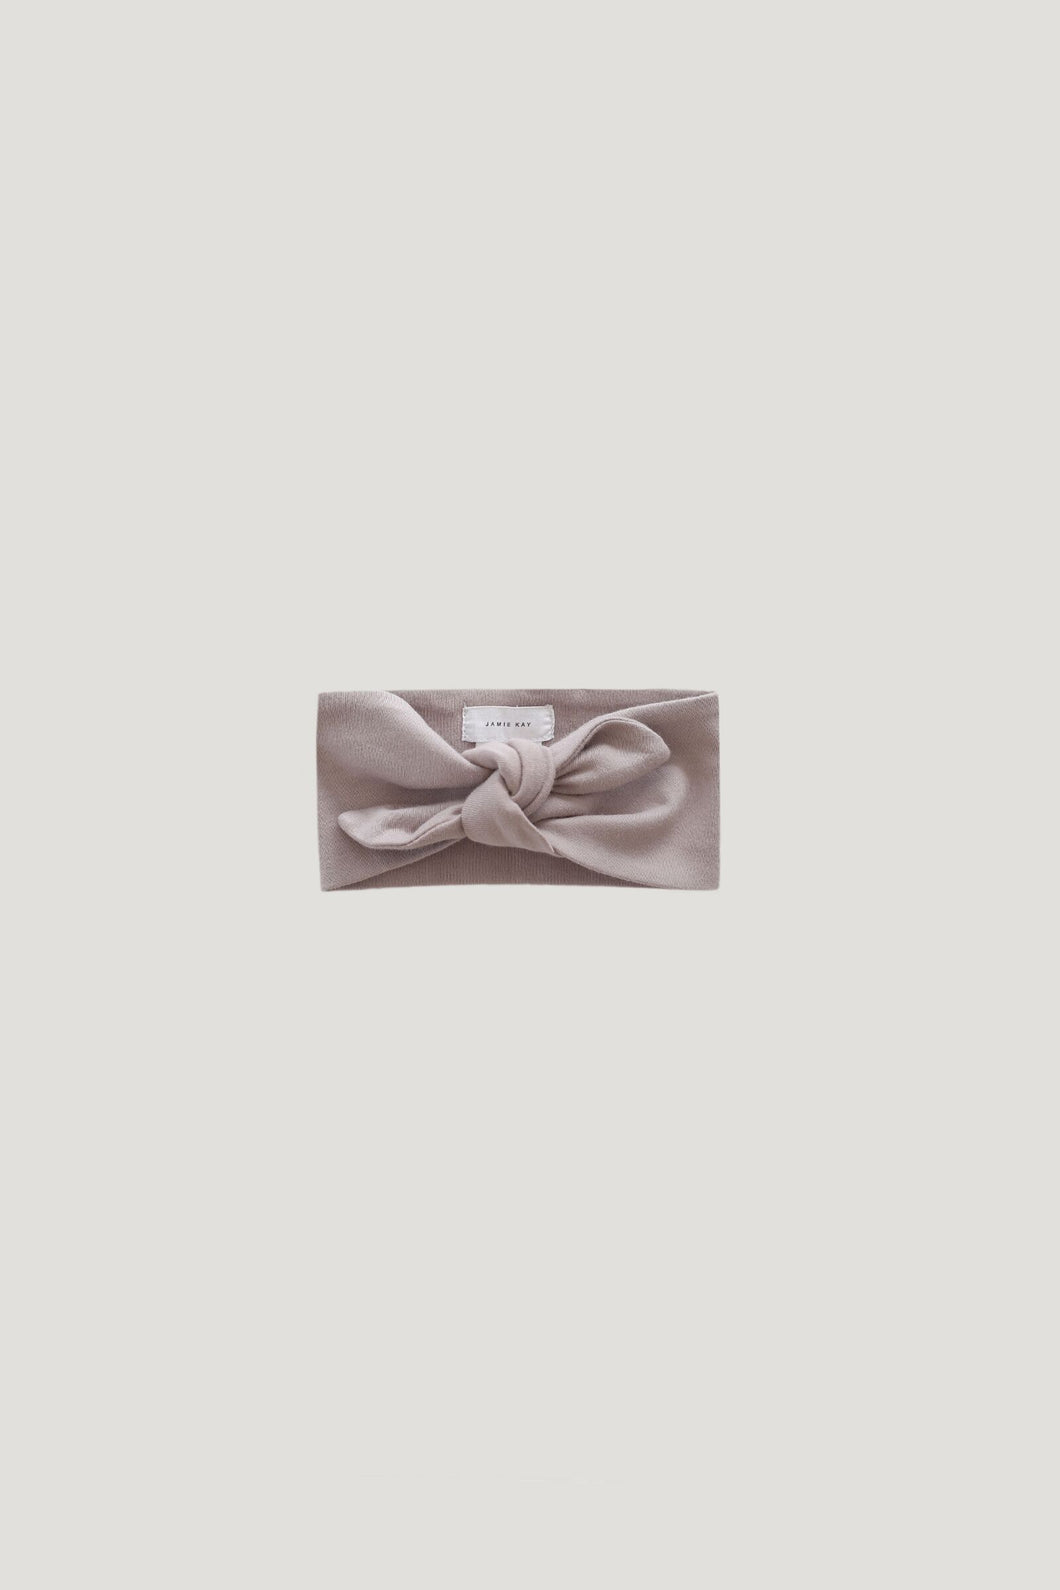 Jamie Kay Organic Cotton Headband - Sweetpea